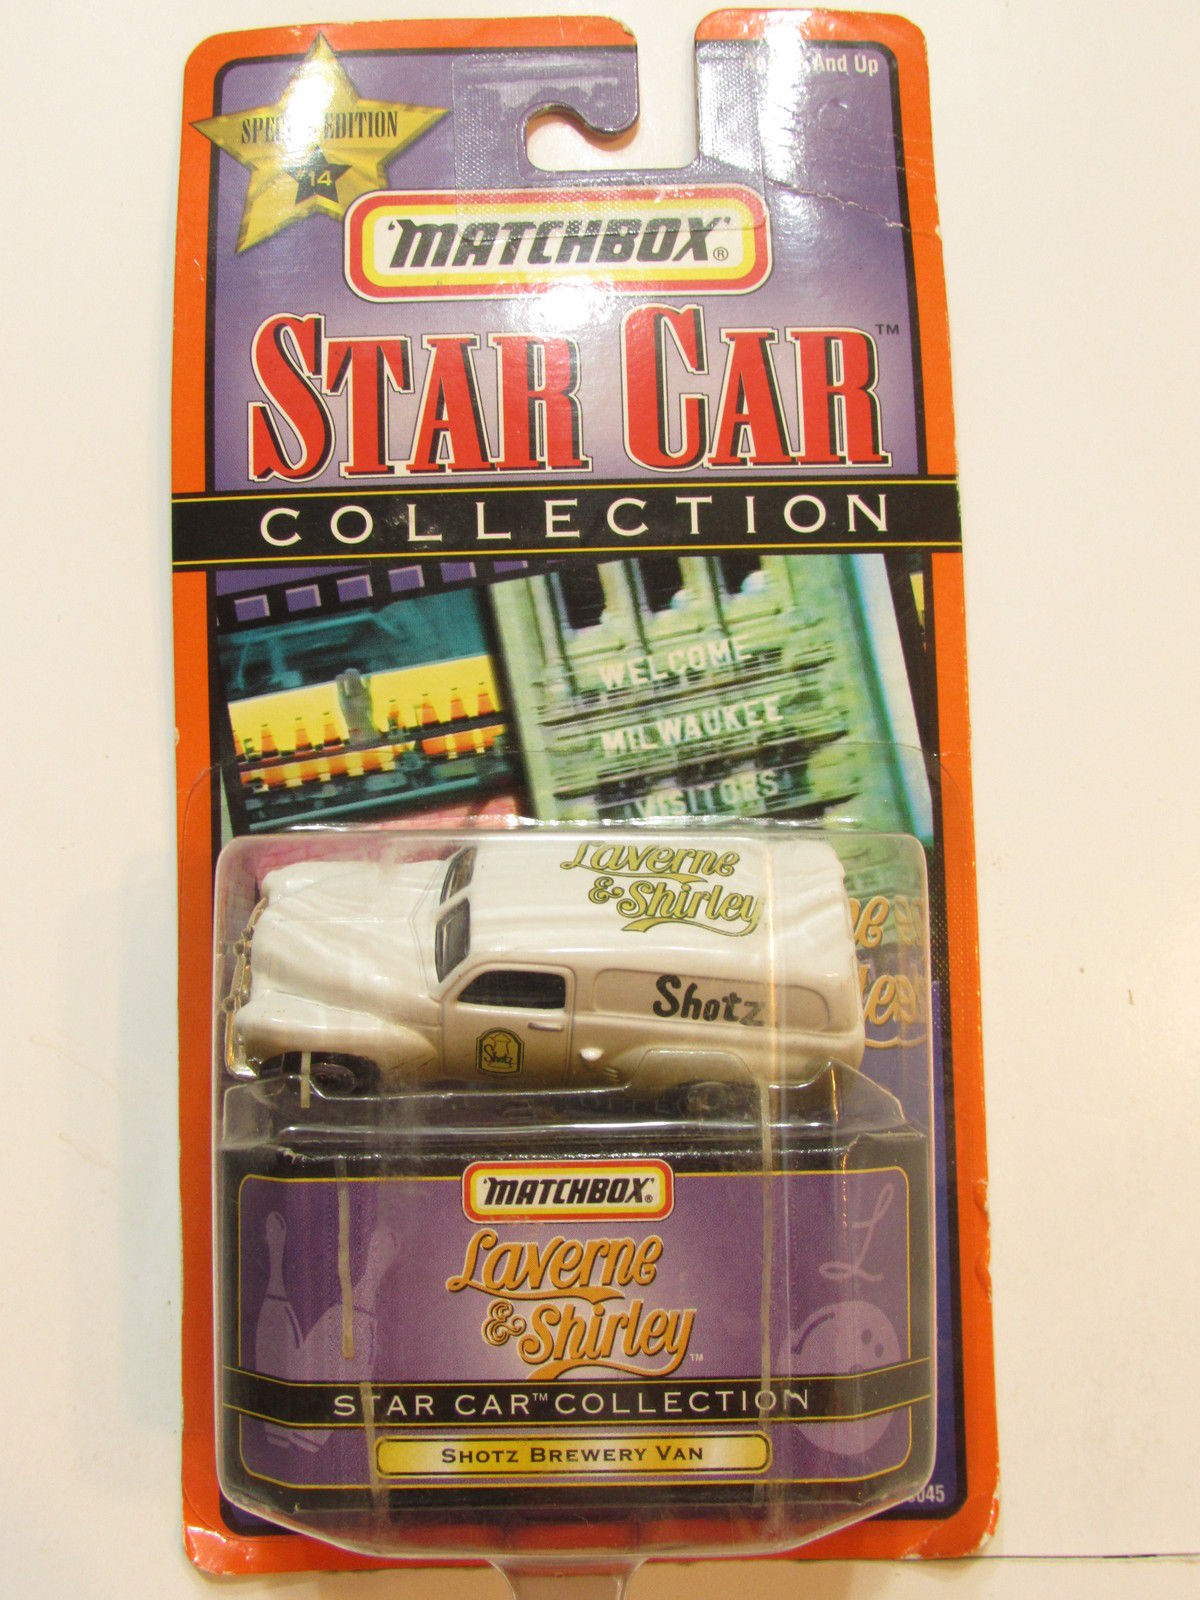 MATCHBOX STAR CAR COLLECTION #14 LAVERNE & SHIRLEY - SHORTZ BREWERY VAN